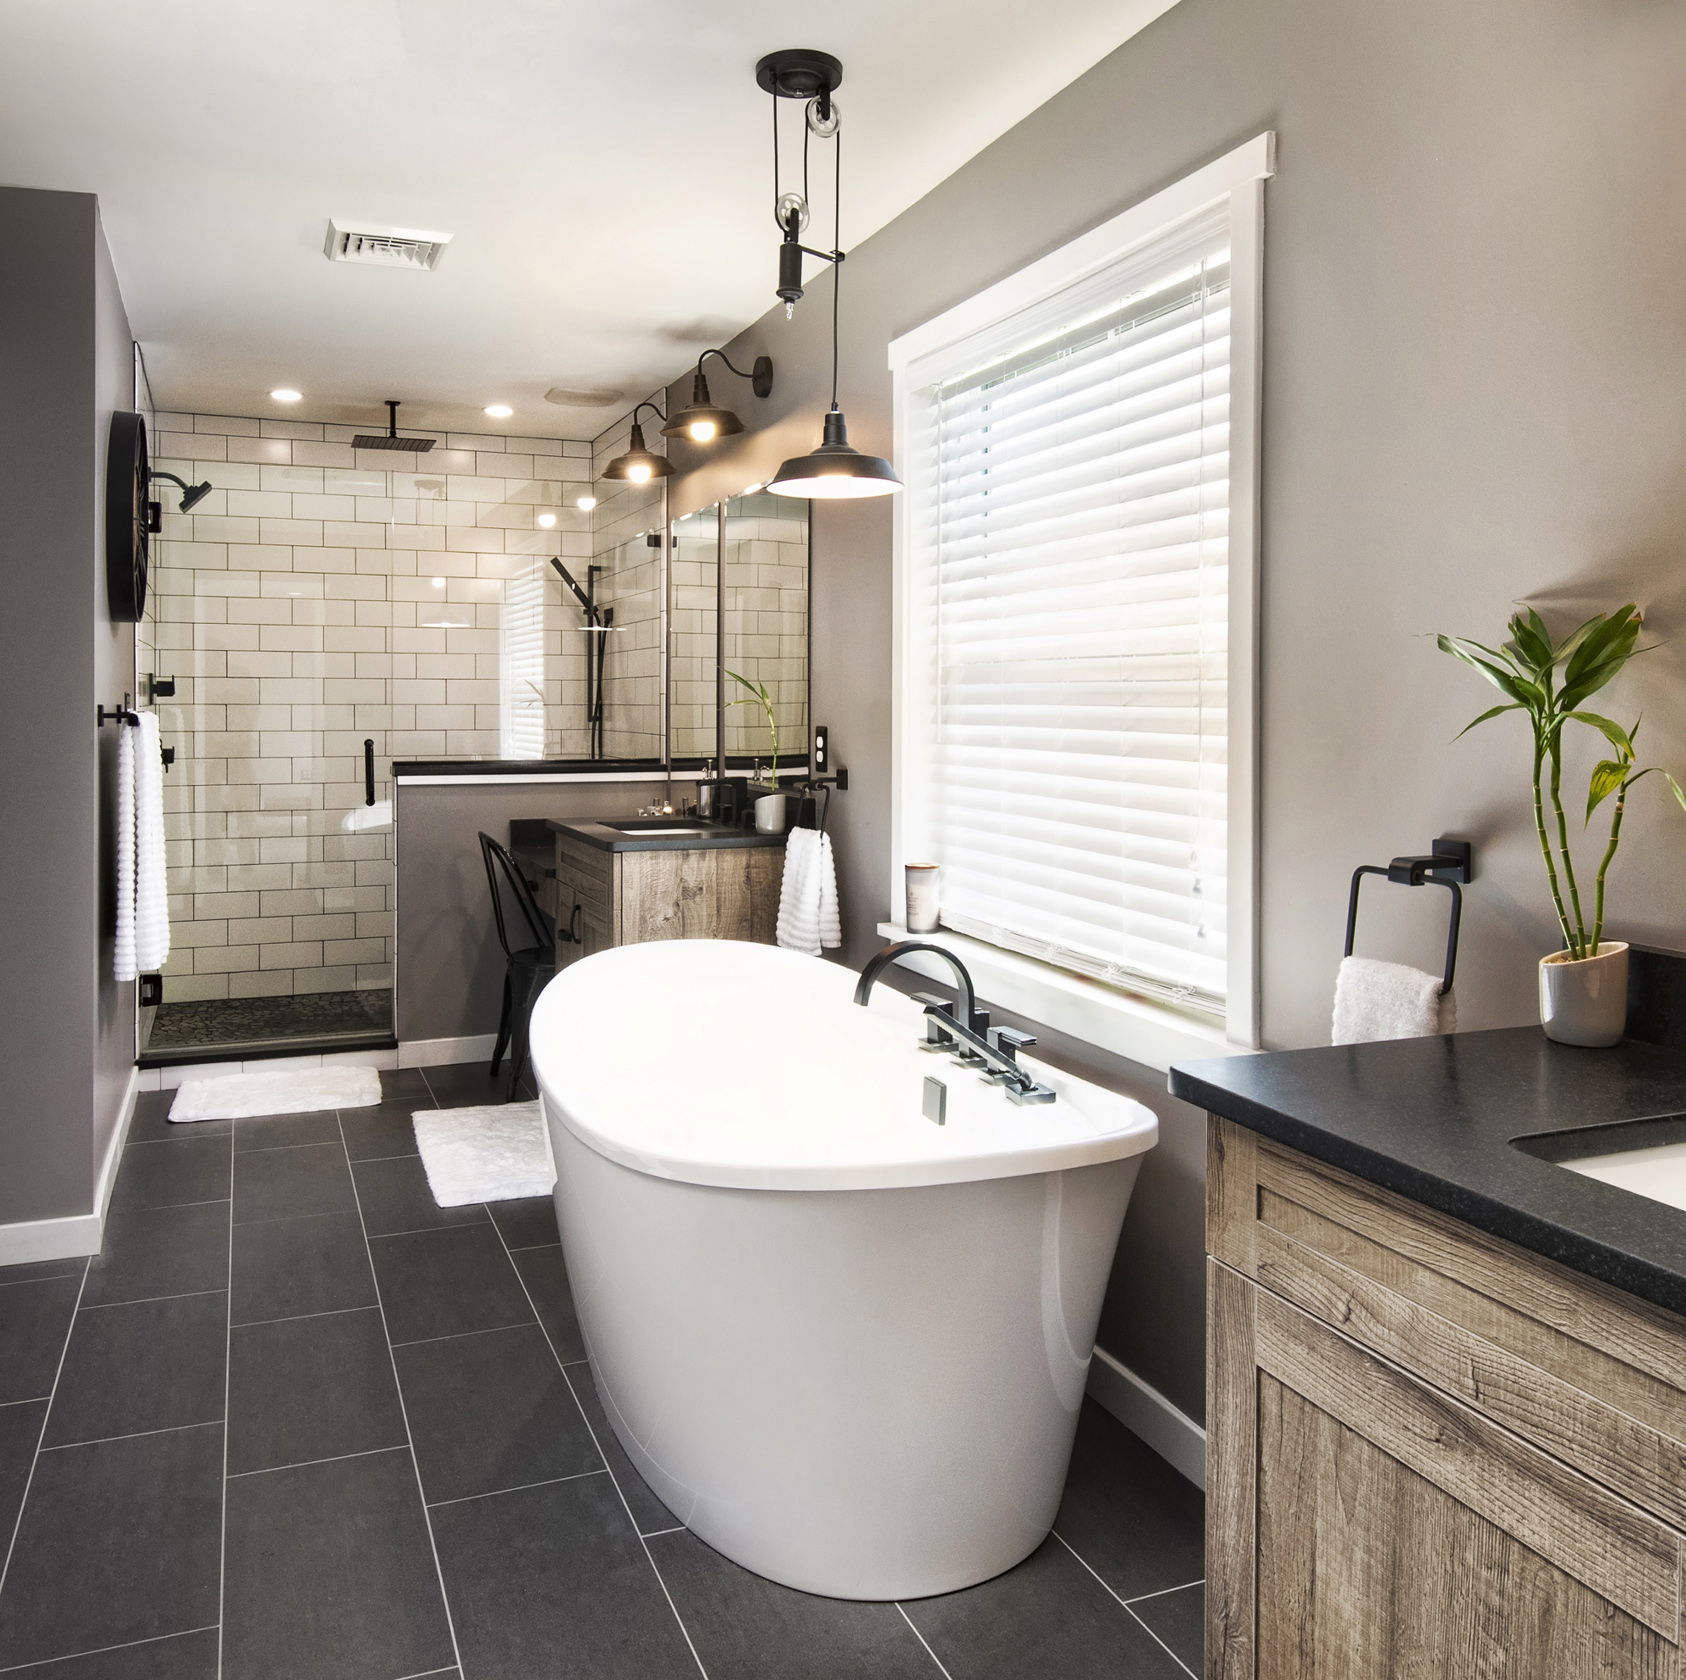 Beautiful master bath combo, and what a great pulley light over the tub. Imperial Construction, Parade of Homes in Berks County 2018. I loved shooting this award winning home. The Imperial staff is second to none!